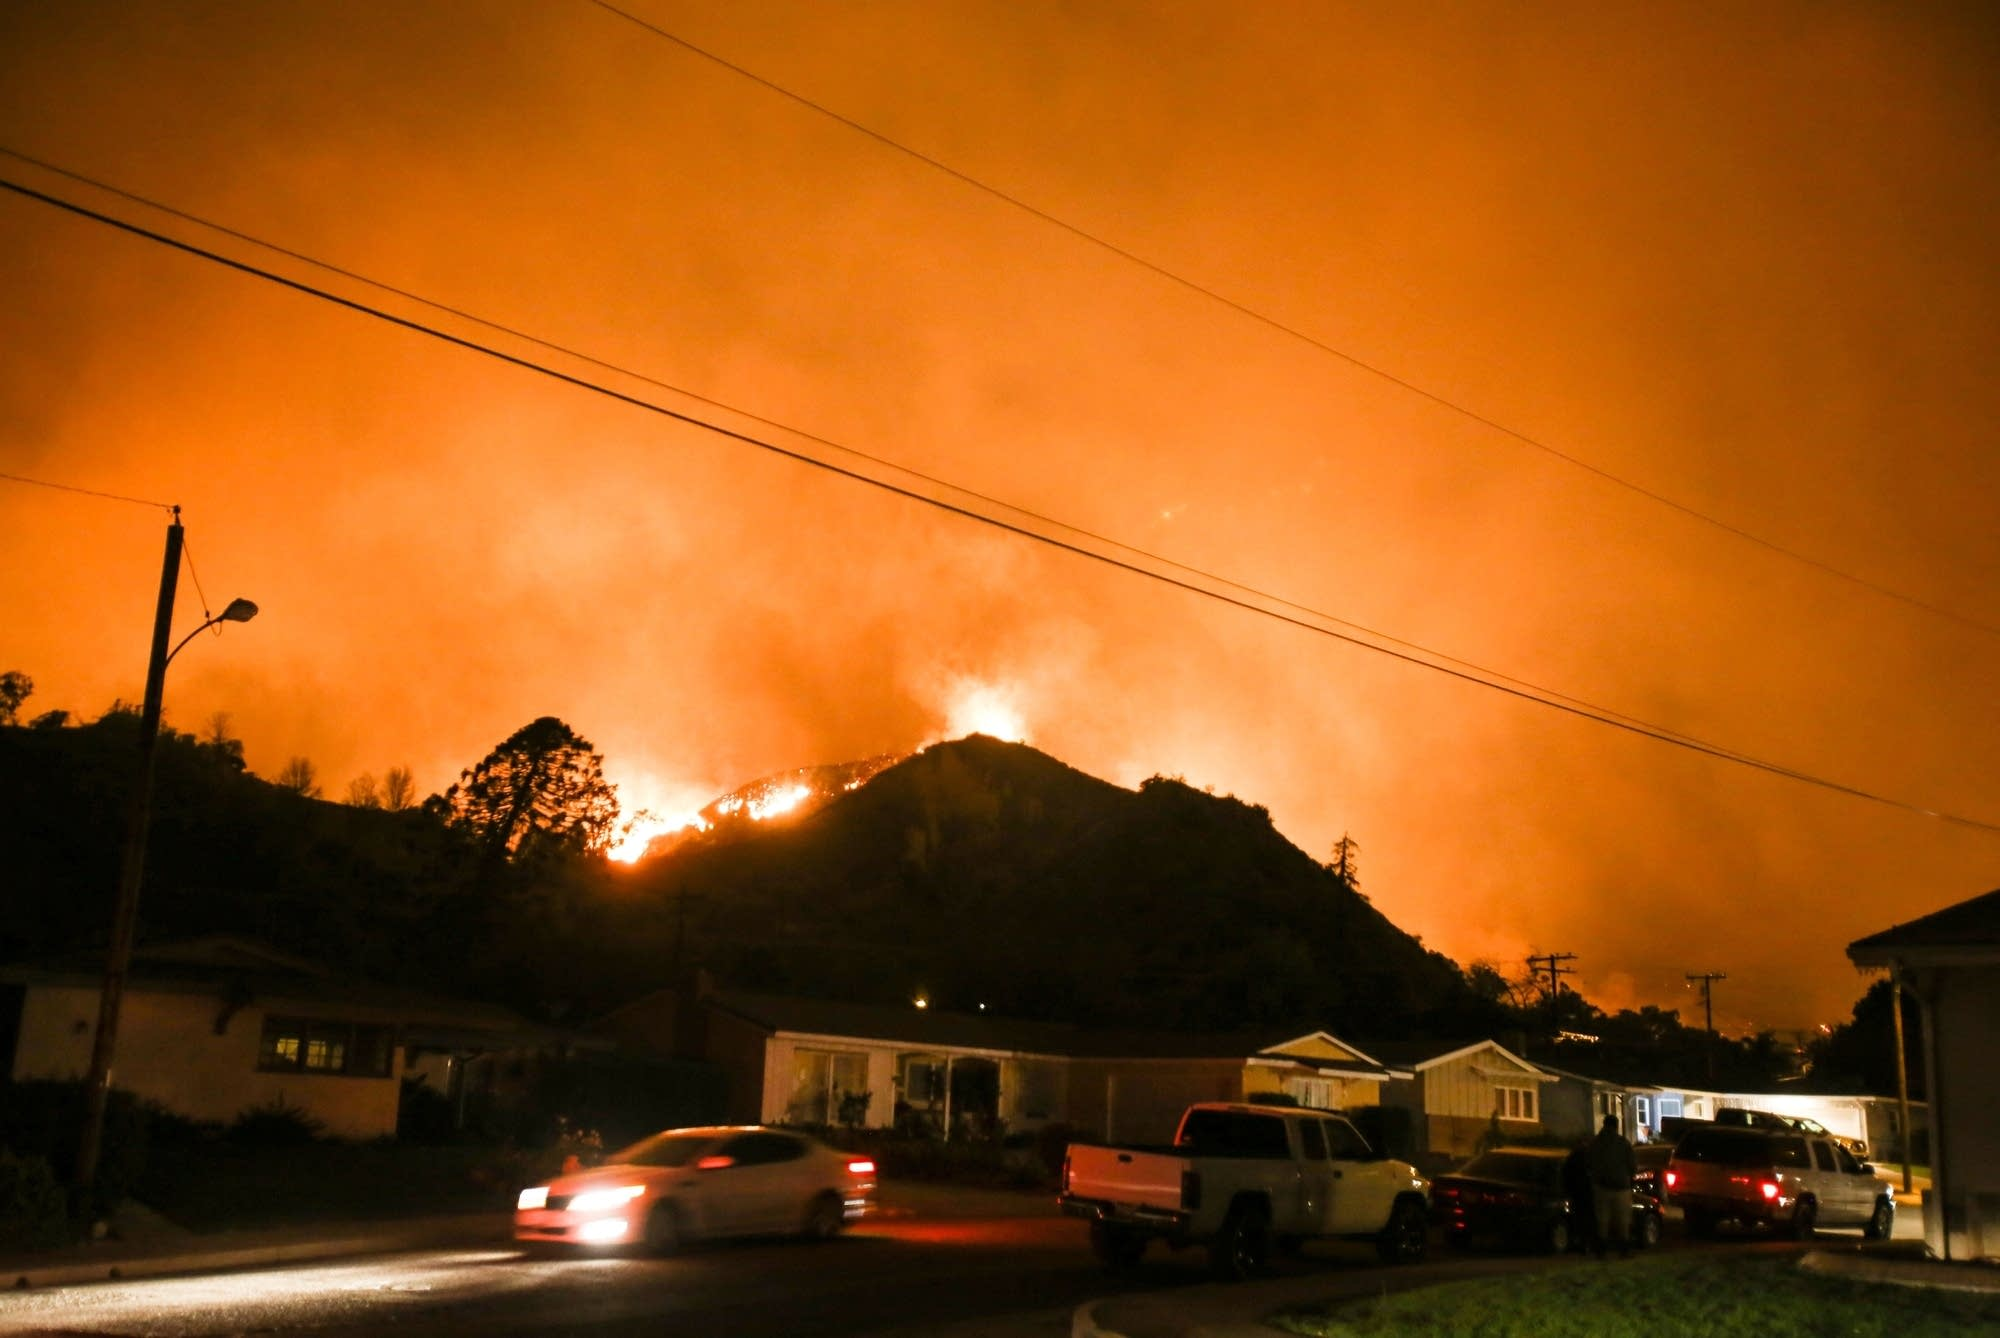 A wildfire burns along a hillside near homes in Santa Paula, Calif.